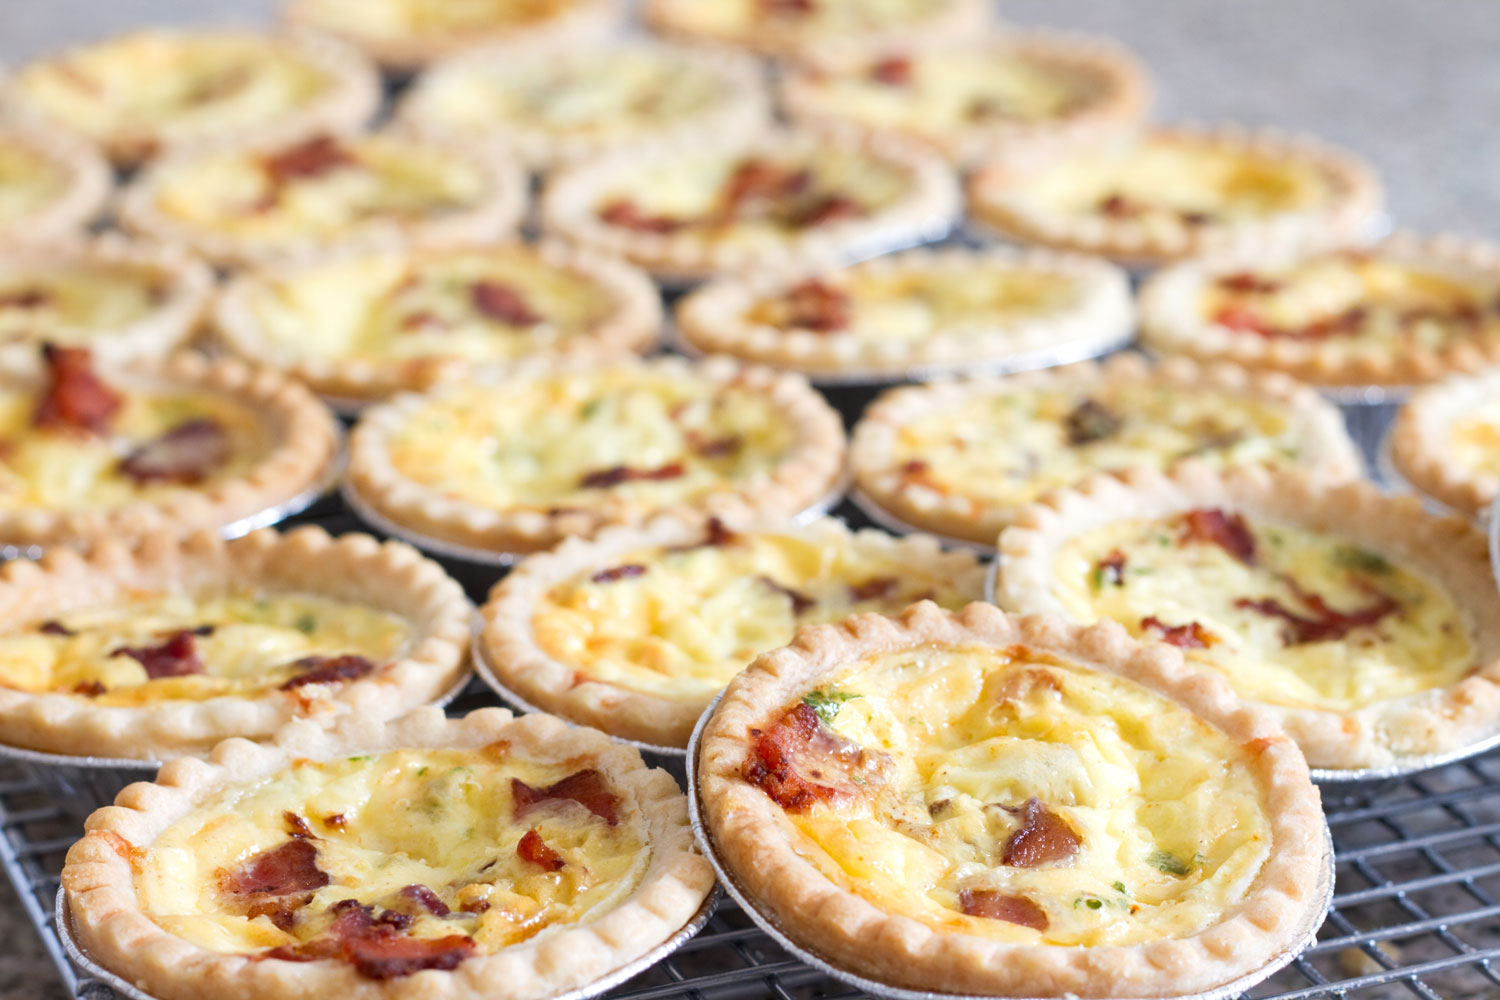 What Do You Serve With Quiche?